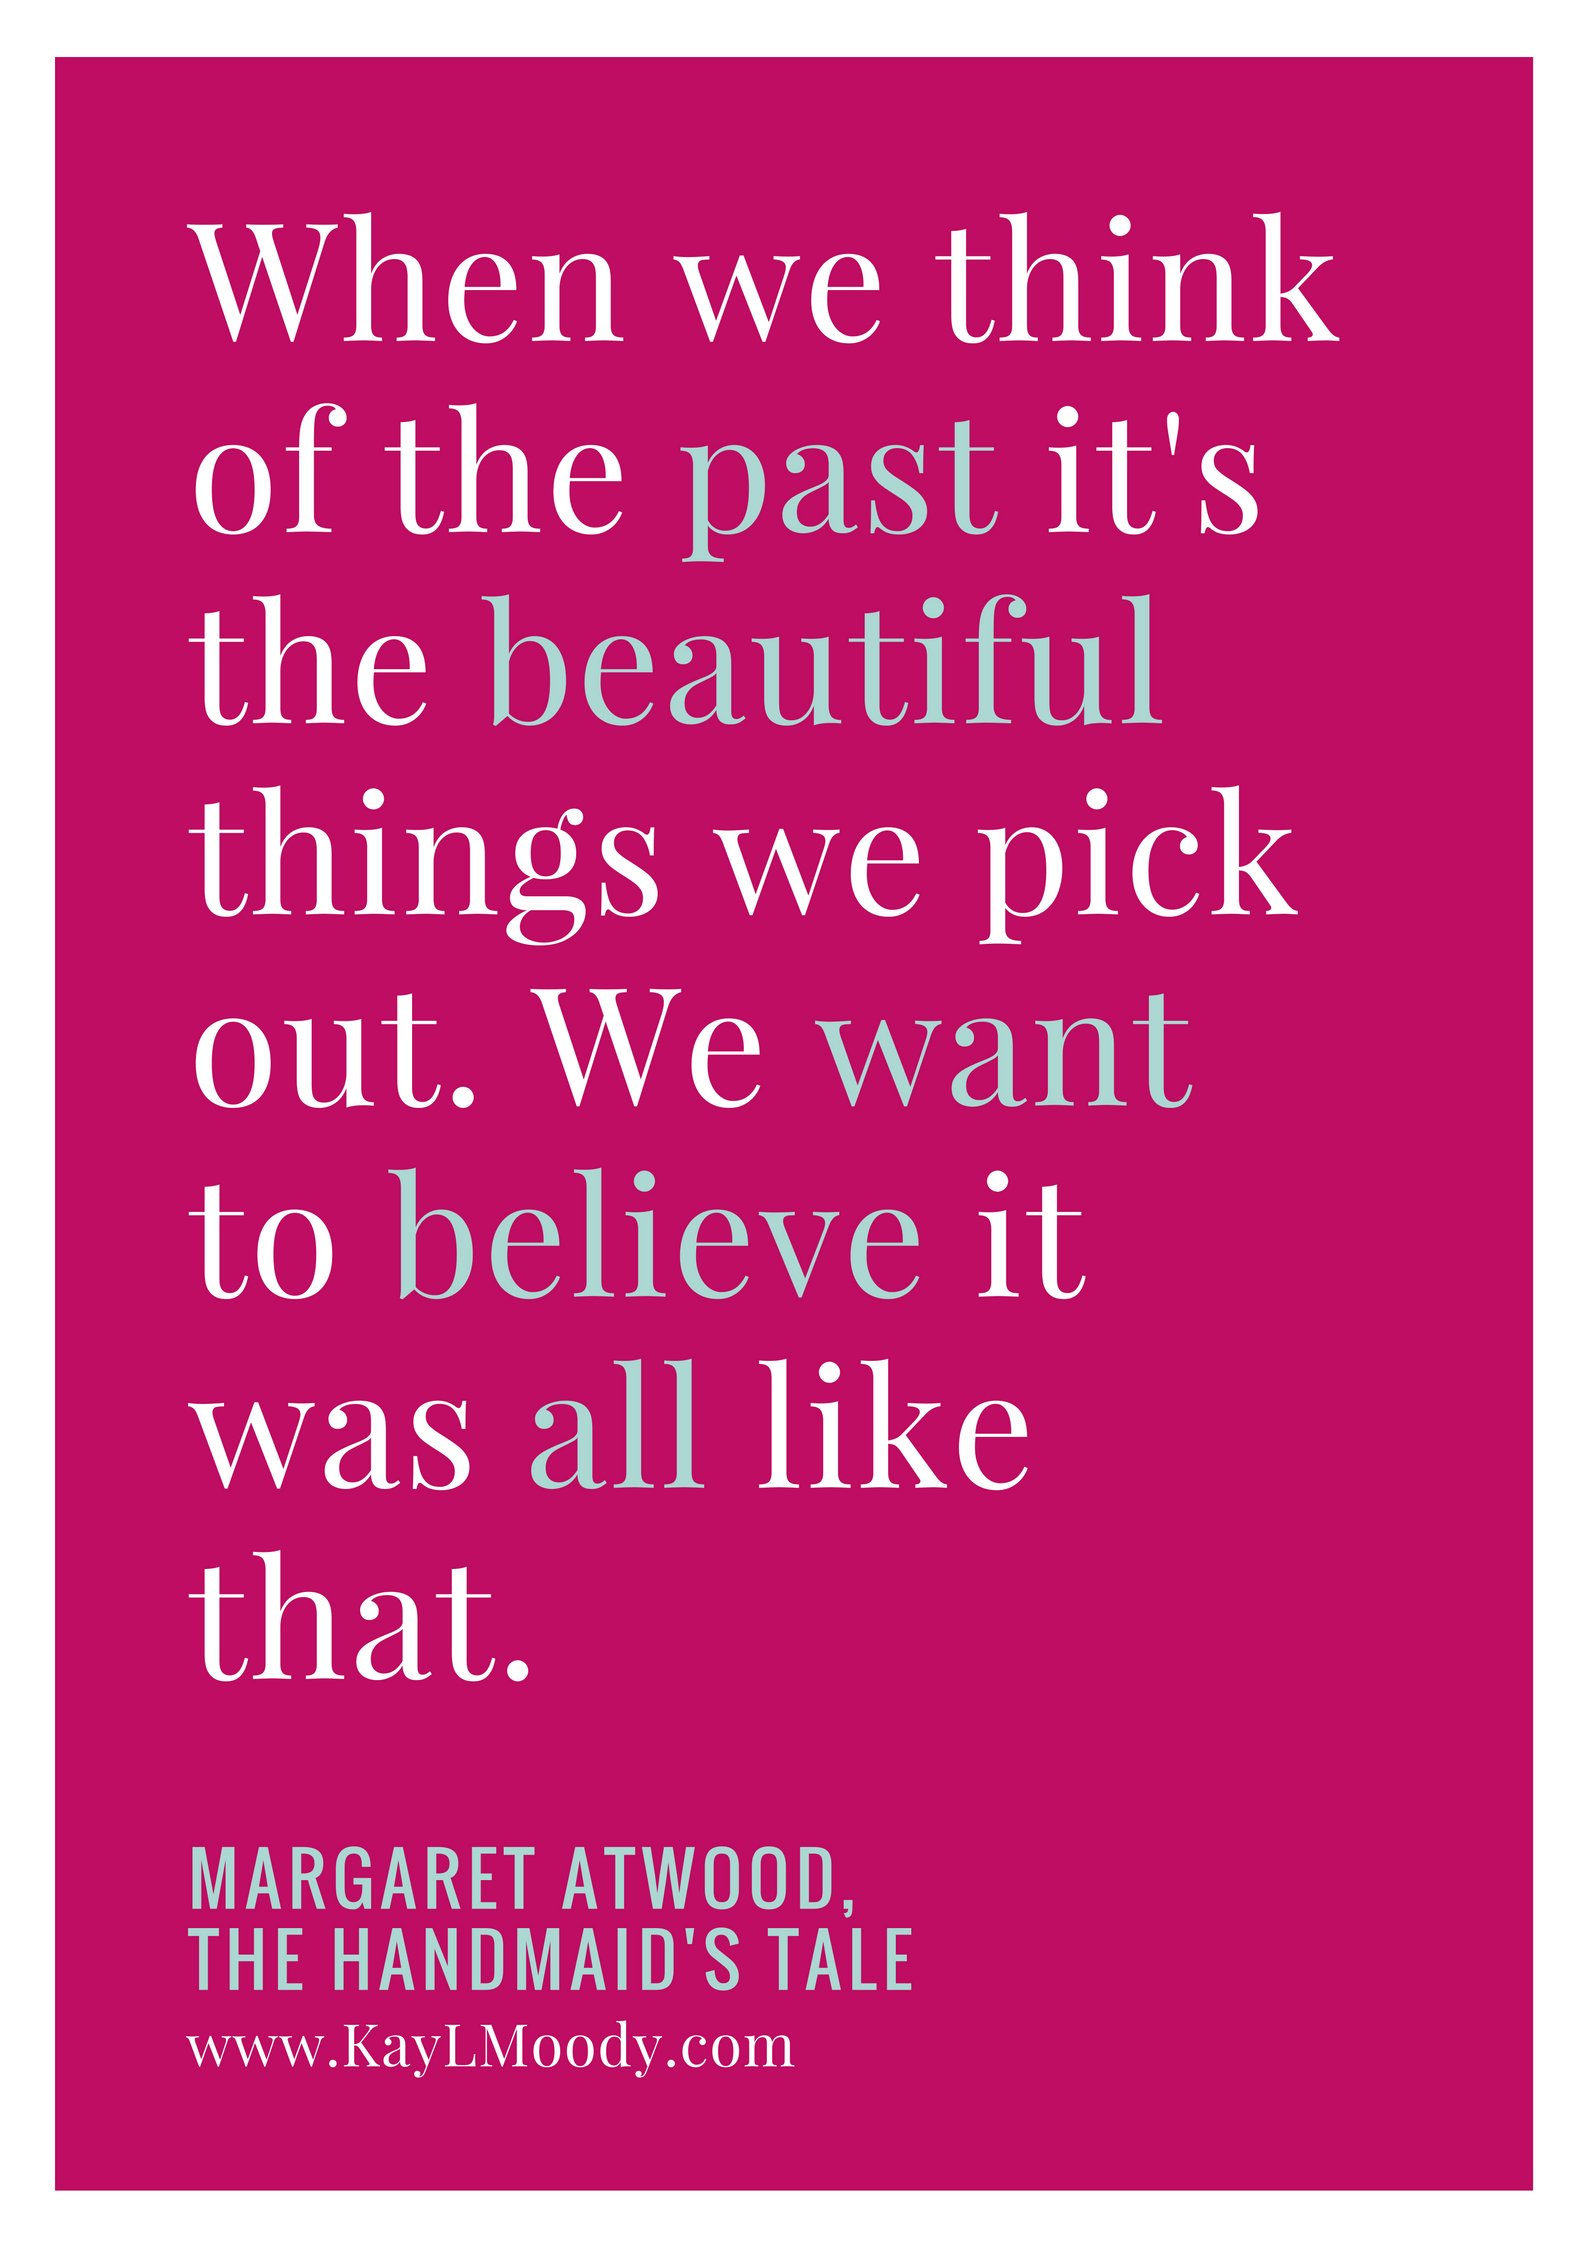 """Best book quotes, love quotes from books, sci fi book quotes, and more from Kay L Moody! """"When we think of the past it's the beautiful things we pick out. We want to believe it was all like that."""" (Margaret Atwood, The Handmaid's Tale)"""